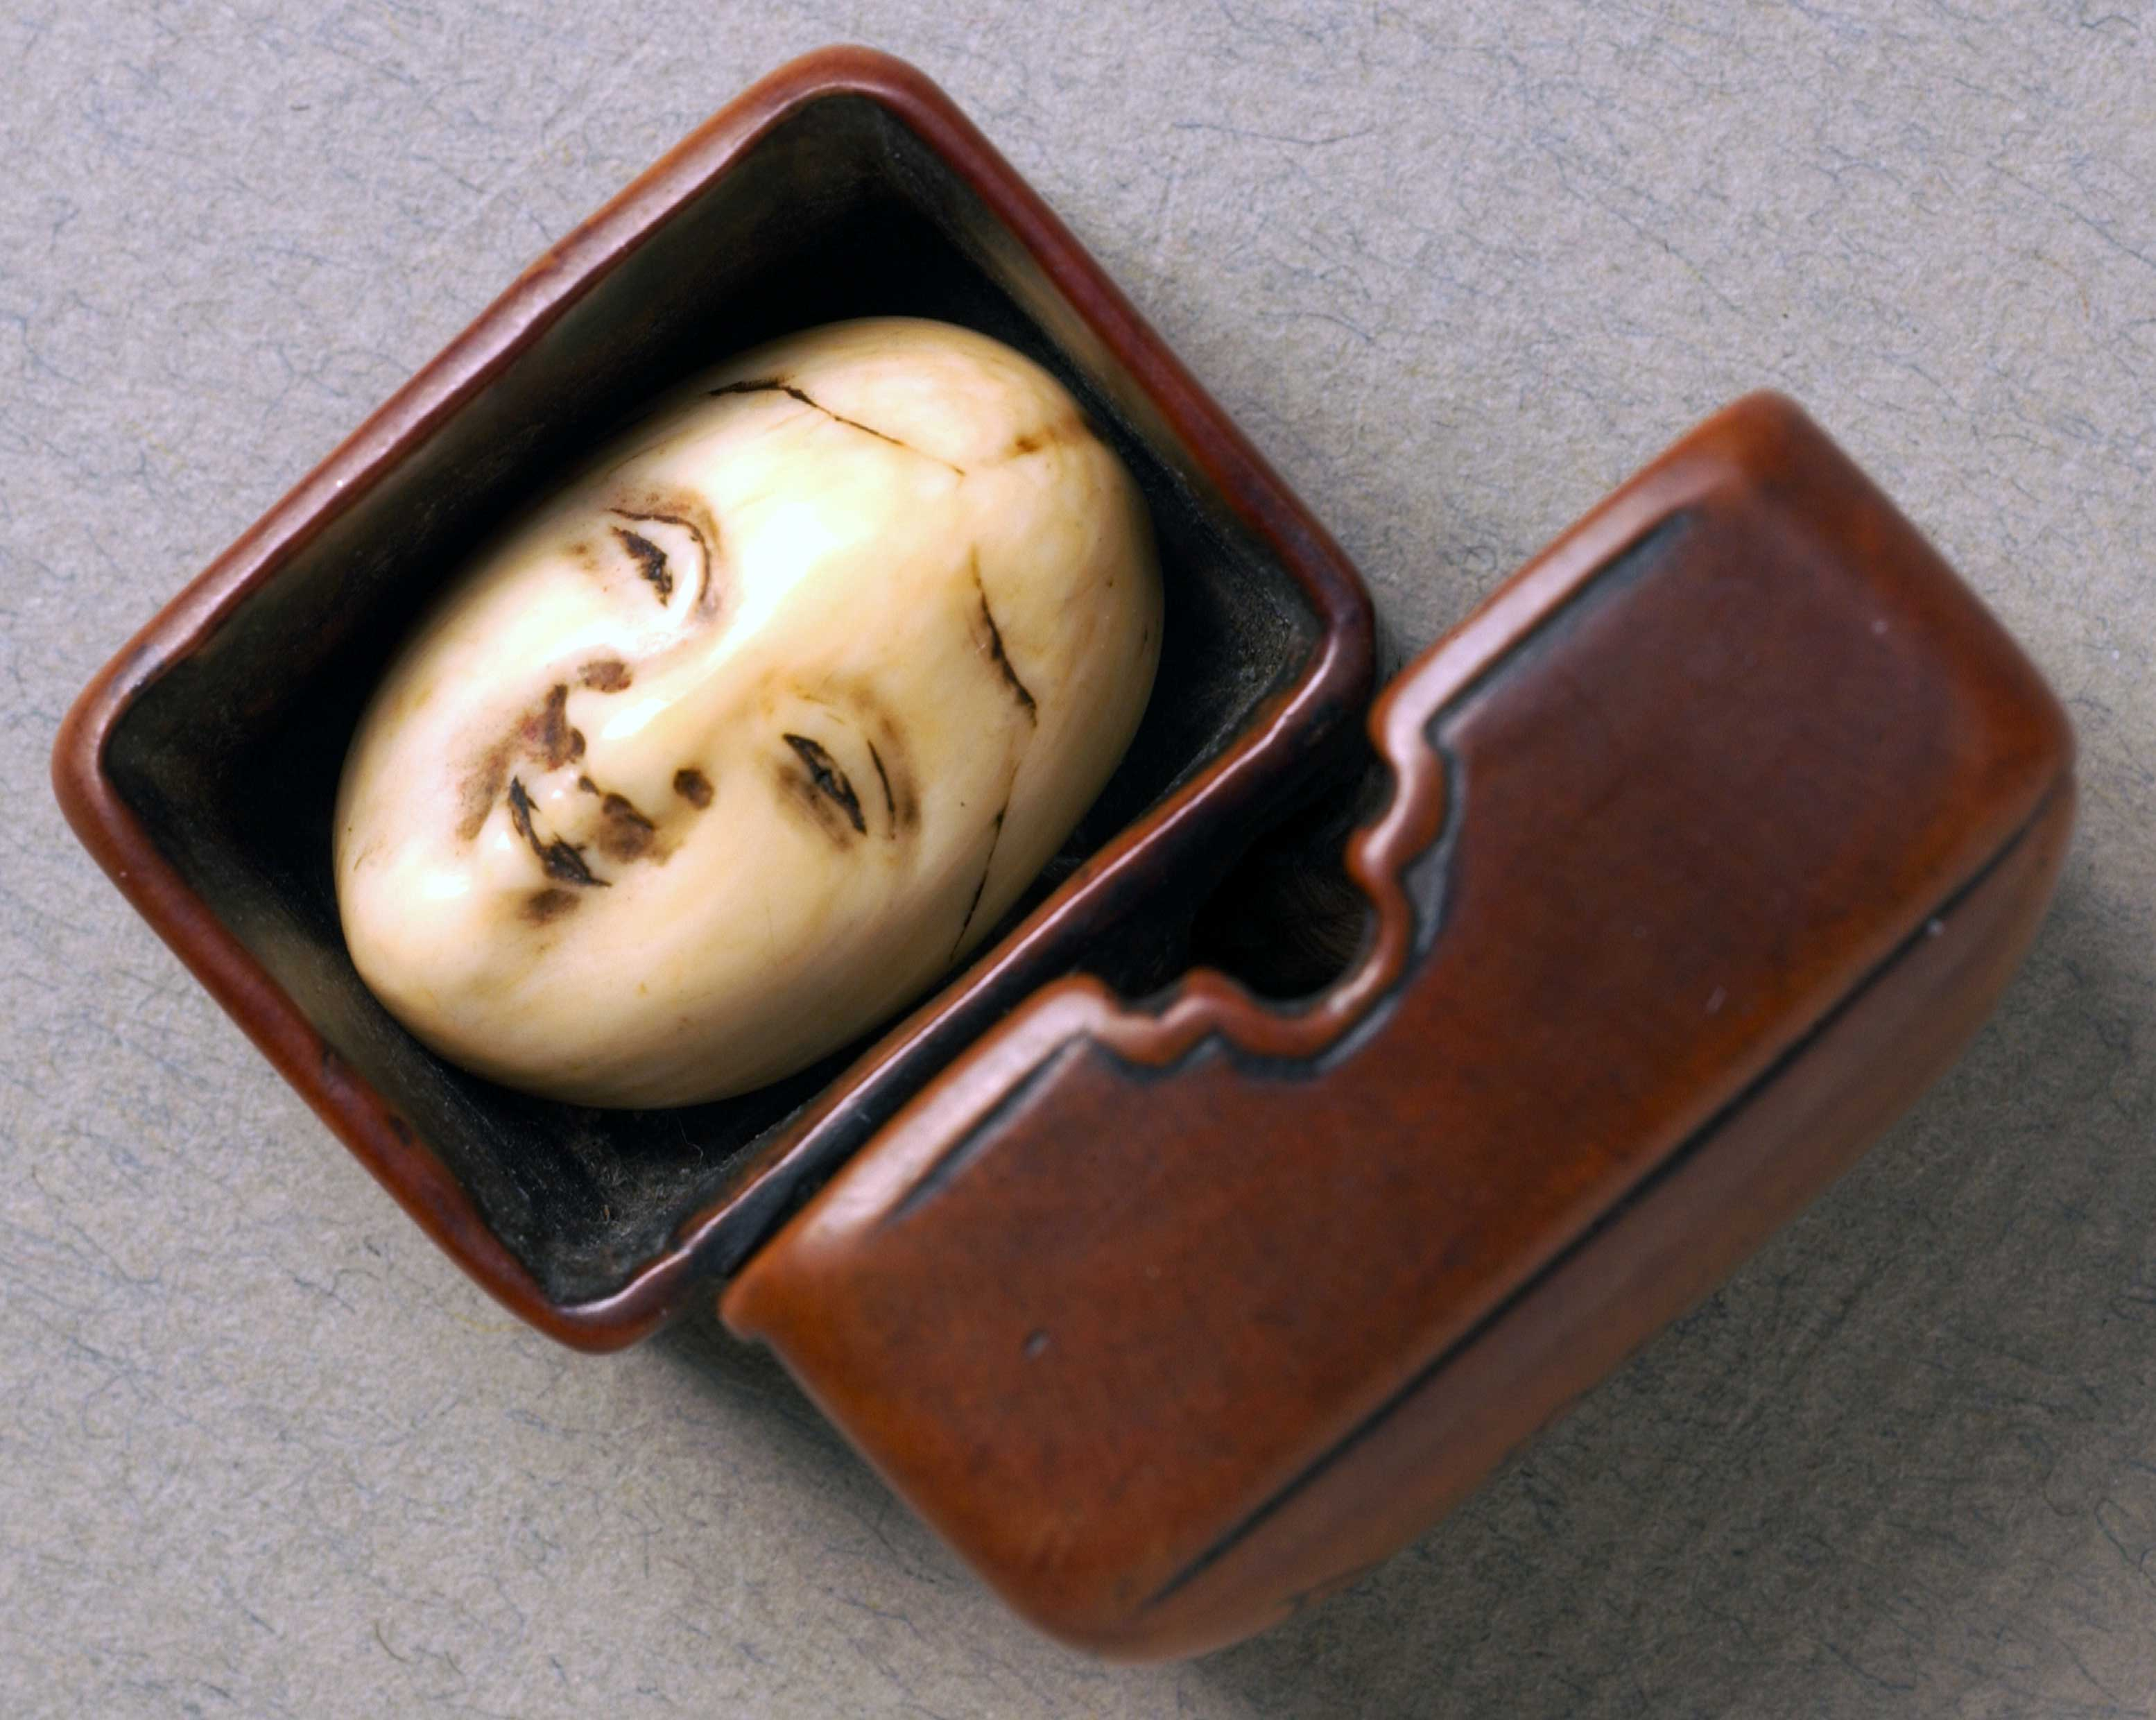 Netsuke in the form of an open box